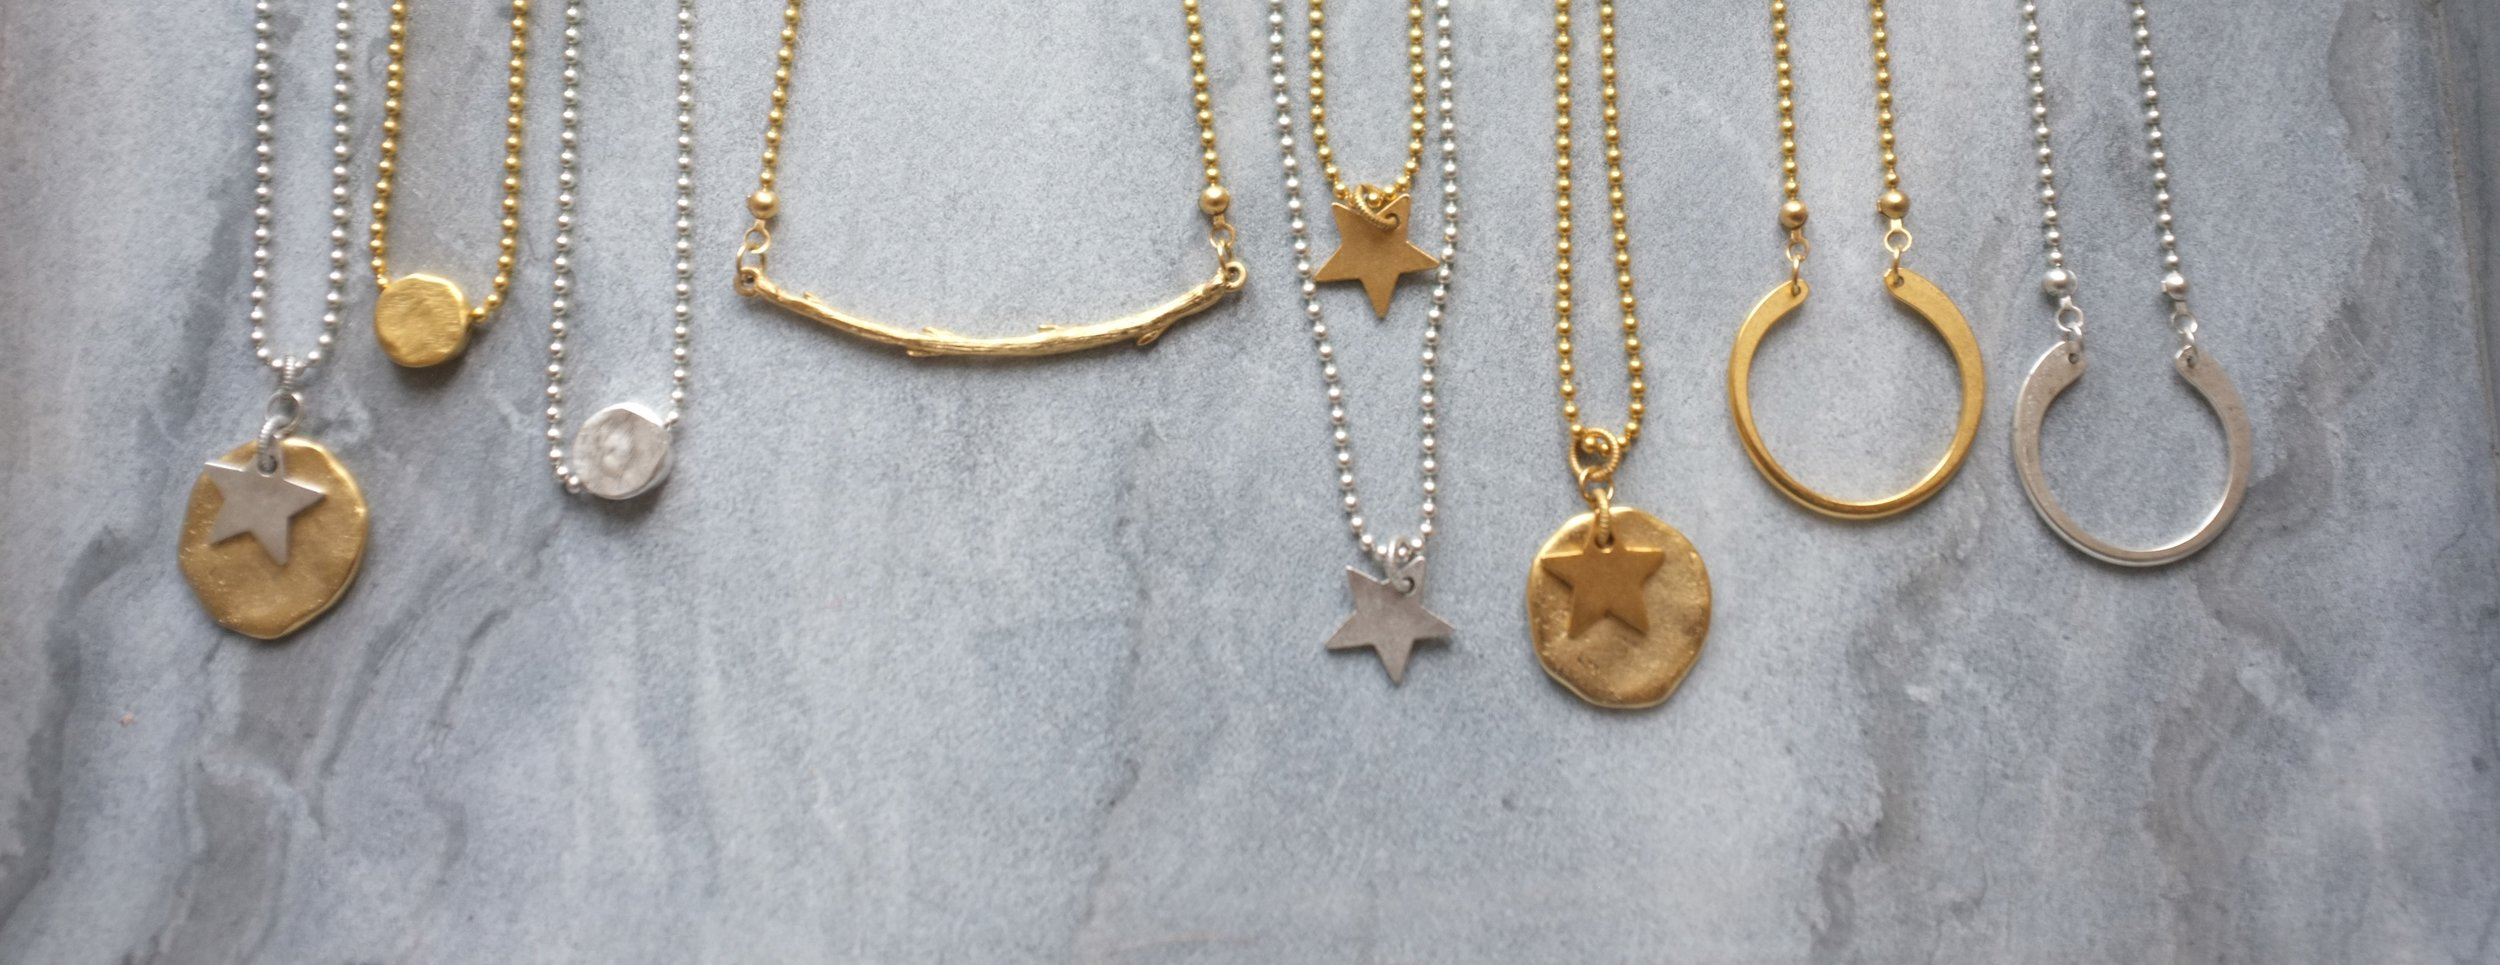 welcome to gift - your one stop shop for simply stylish jewellery